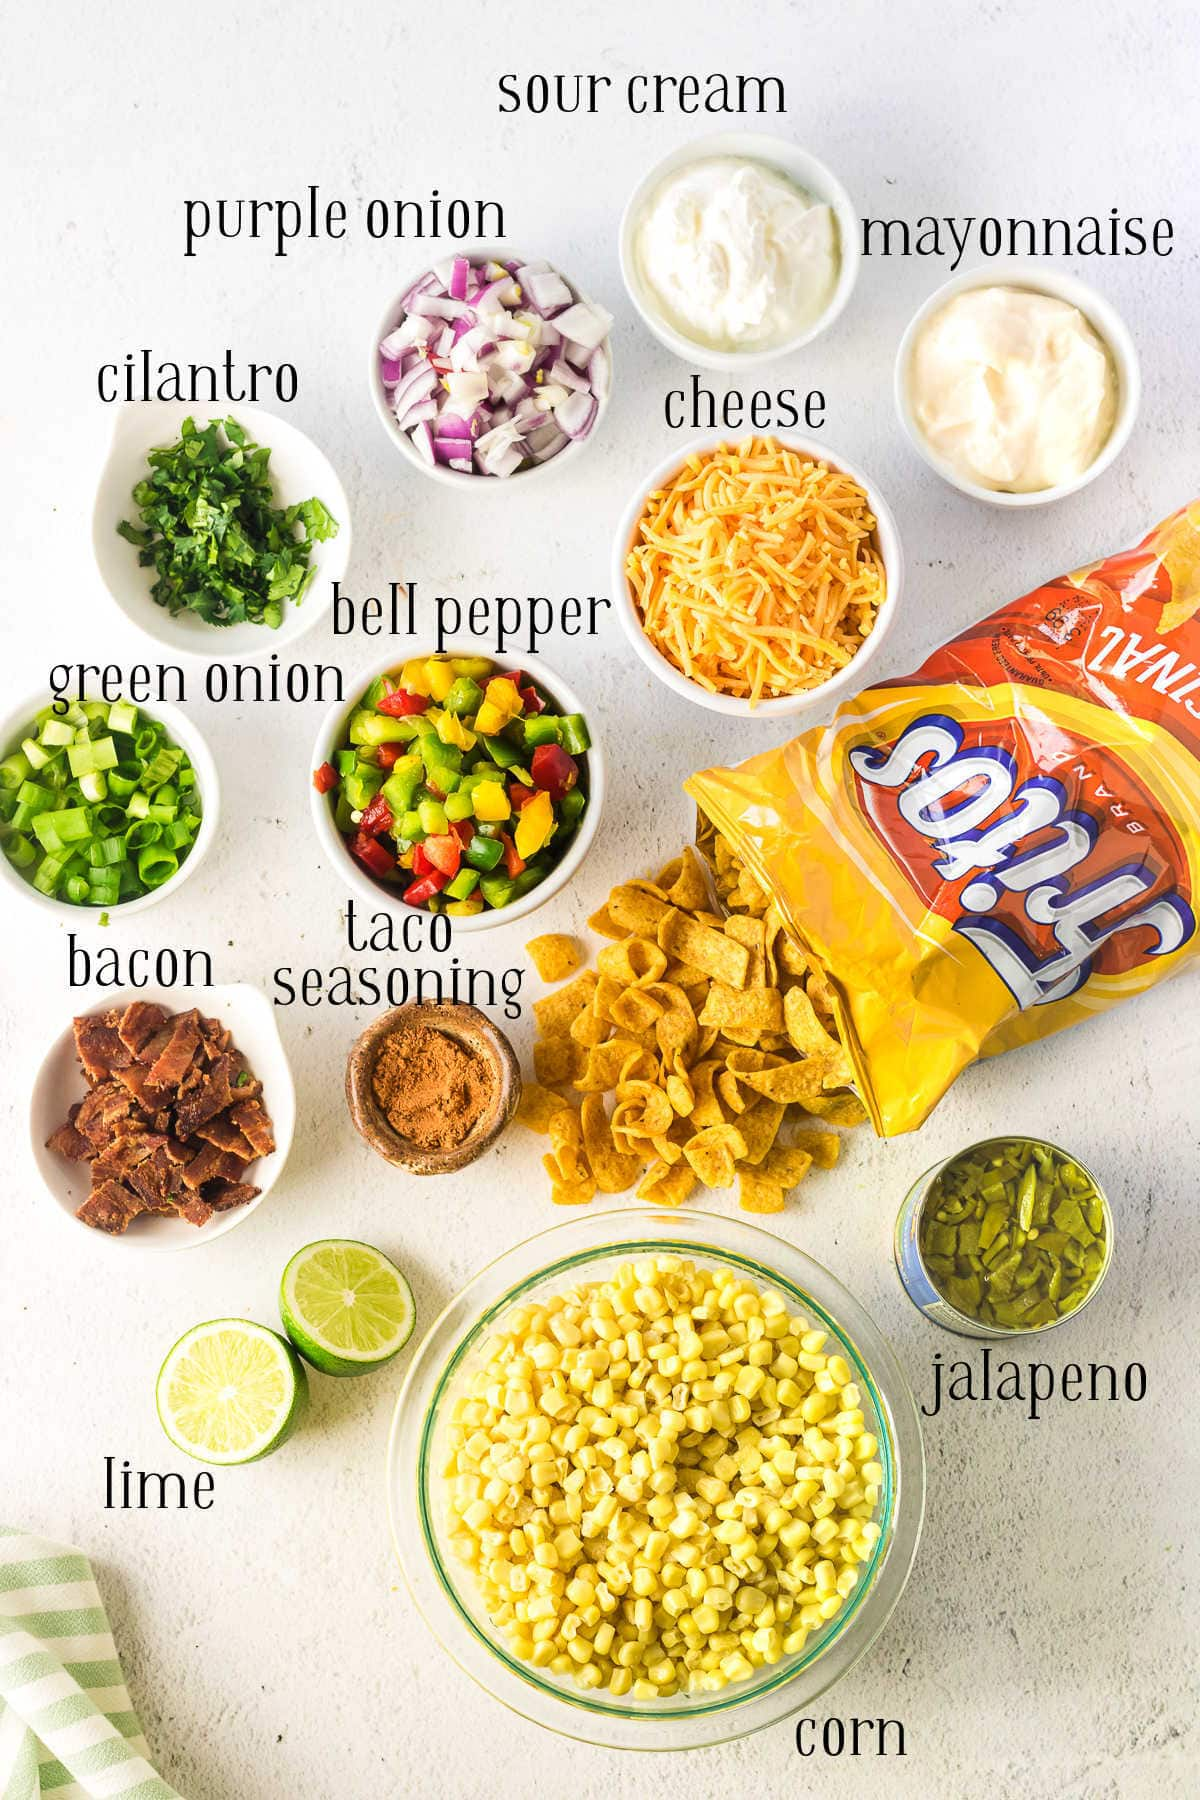 Labeled Frito salad ingredients.